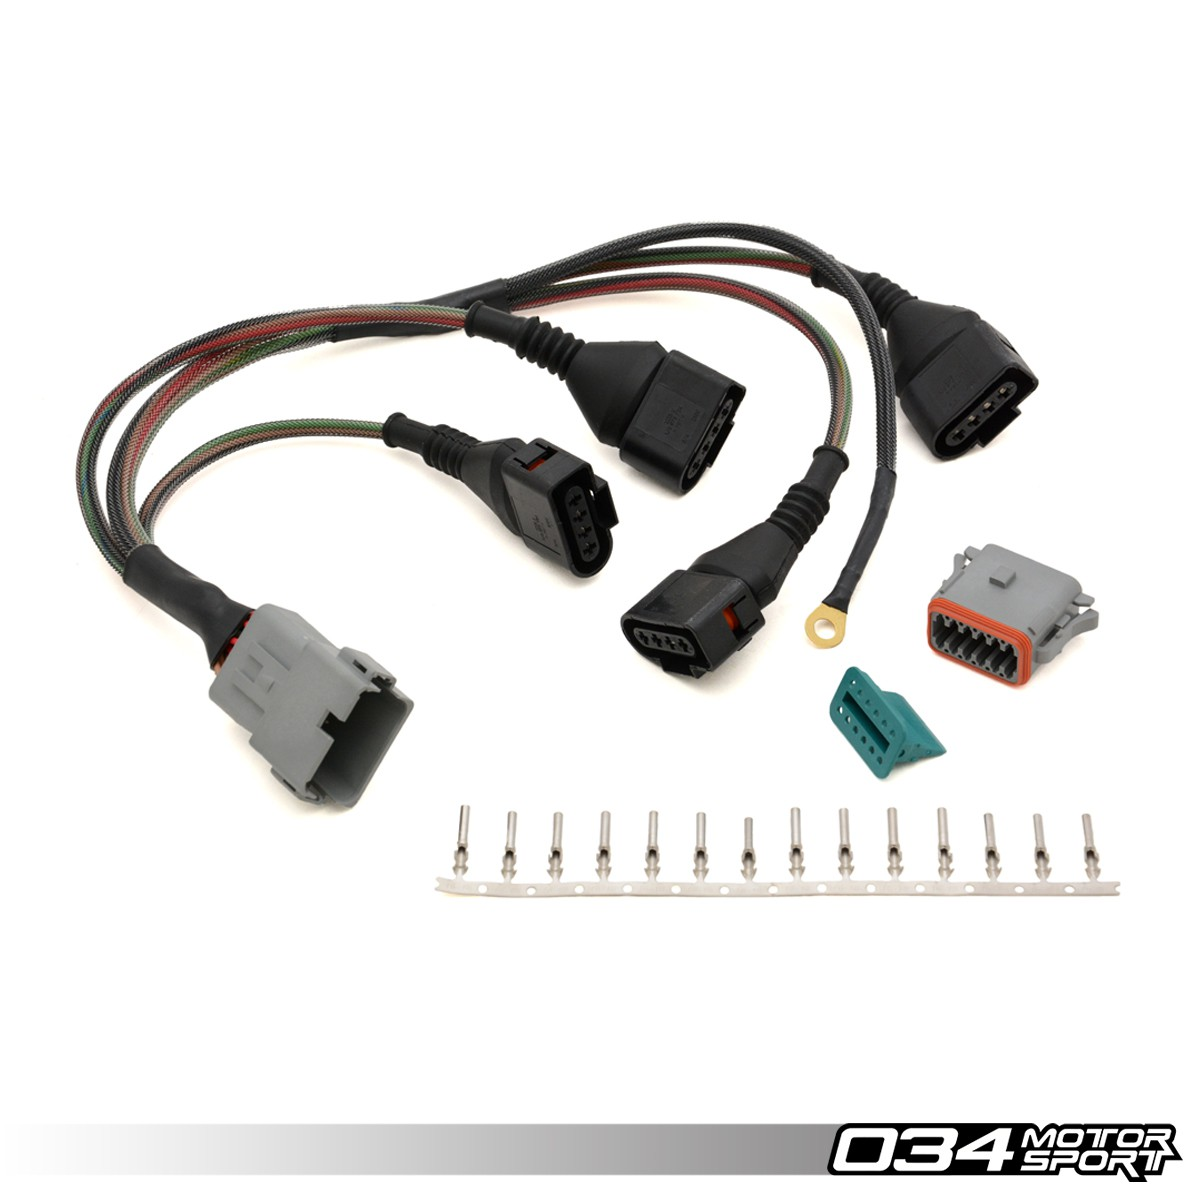 repair update harness audi volkswagen 18t with 4 wire coils 034motorsport 034 701 0004 2 repair update harness, audi volkswagen 1 8t with 4 wire coils how to repair wire harness connector at pacquiaovsvargaslive.co